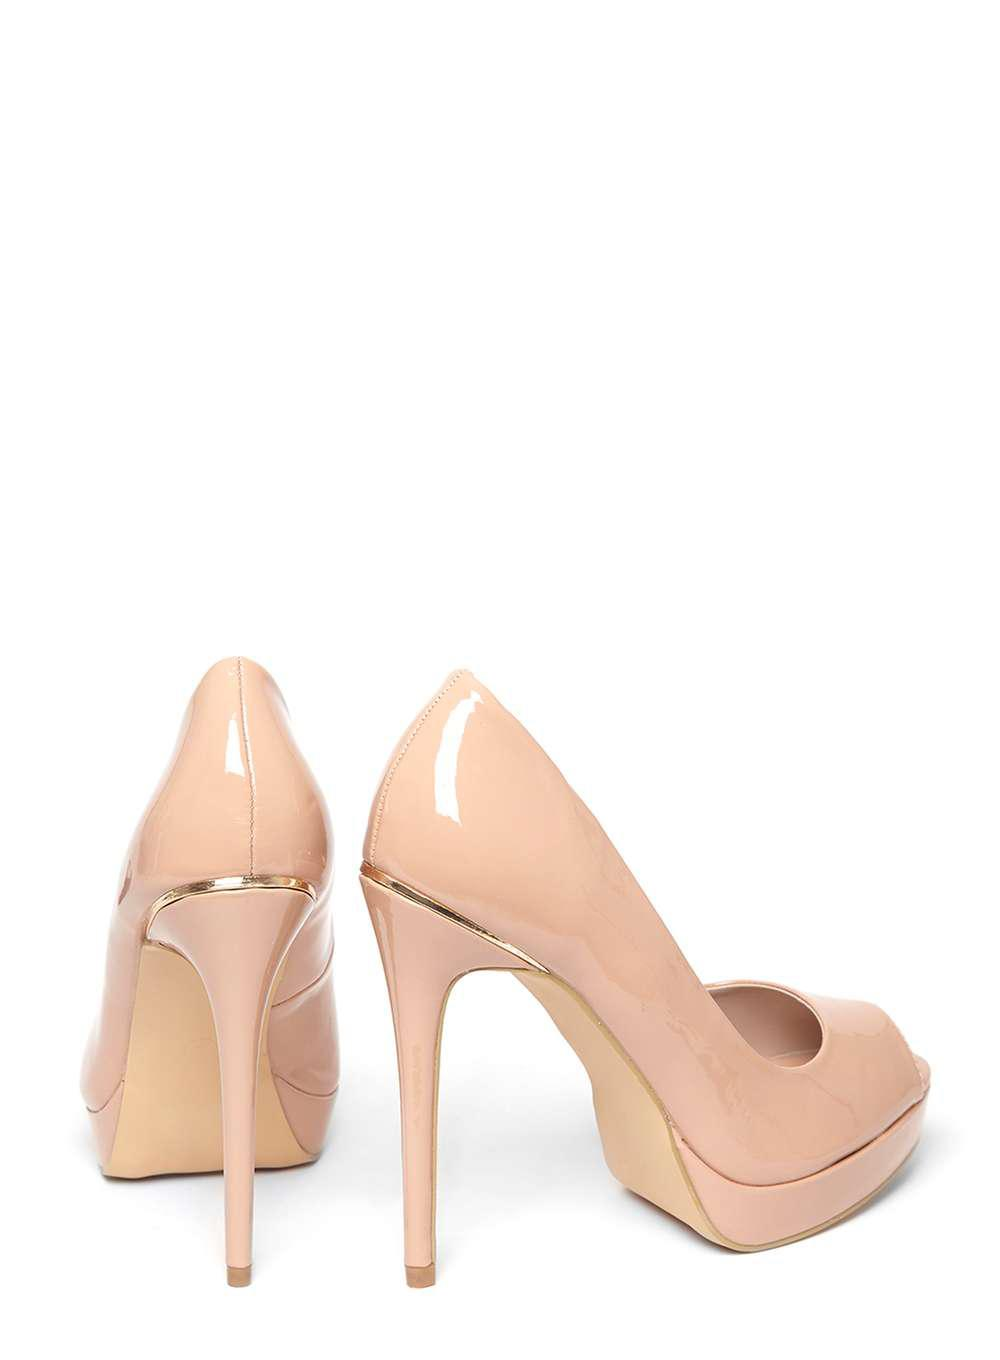 972cb41a11 Dorothy Perkins Nude 'gift' Peep Toe Court Shoes in Natural - Lyst